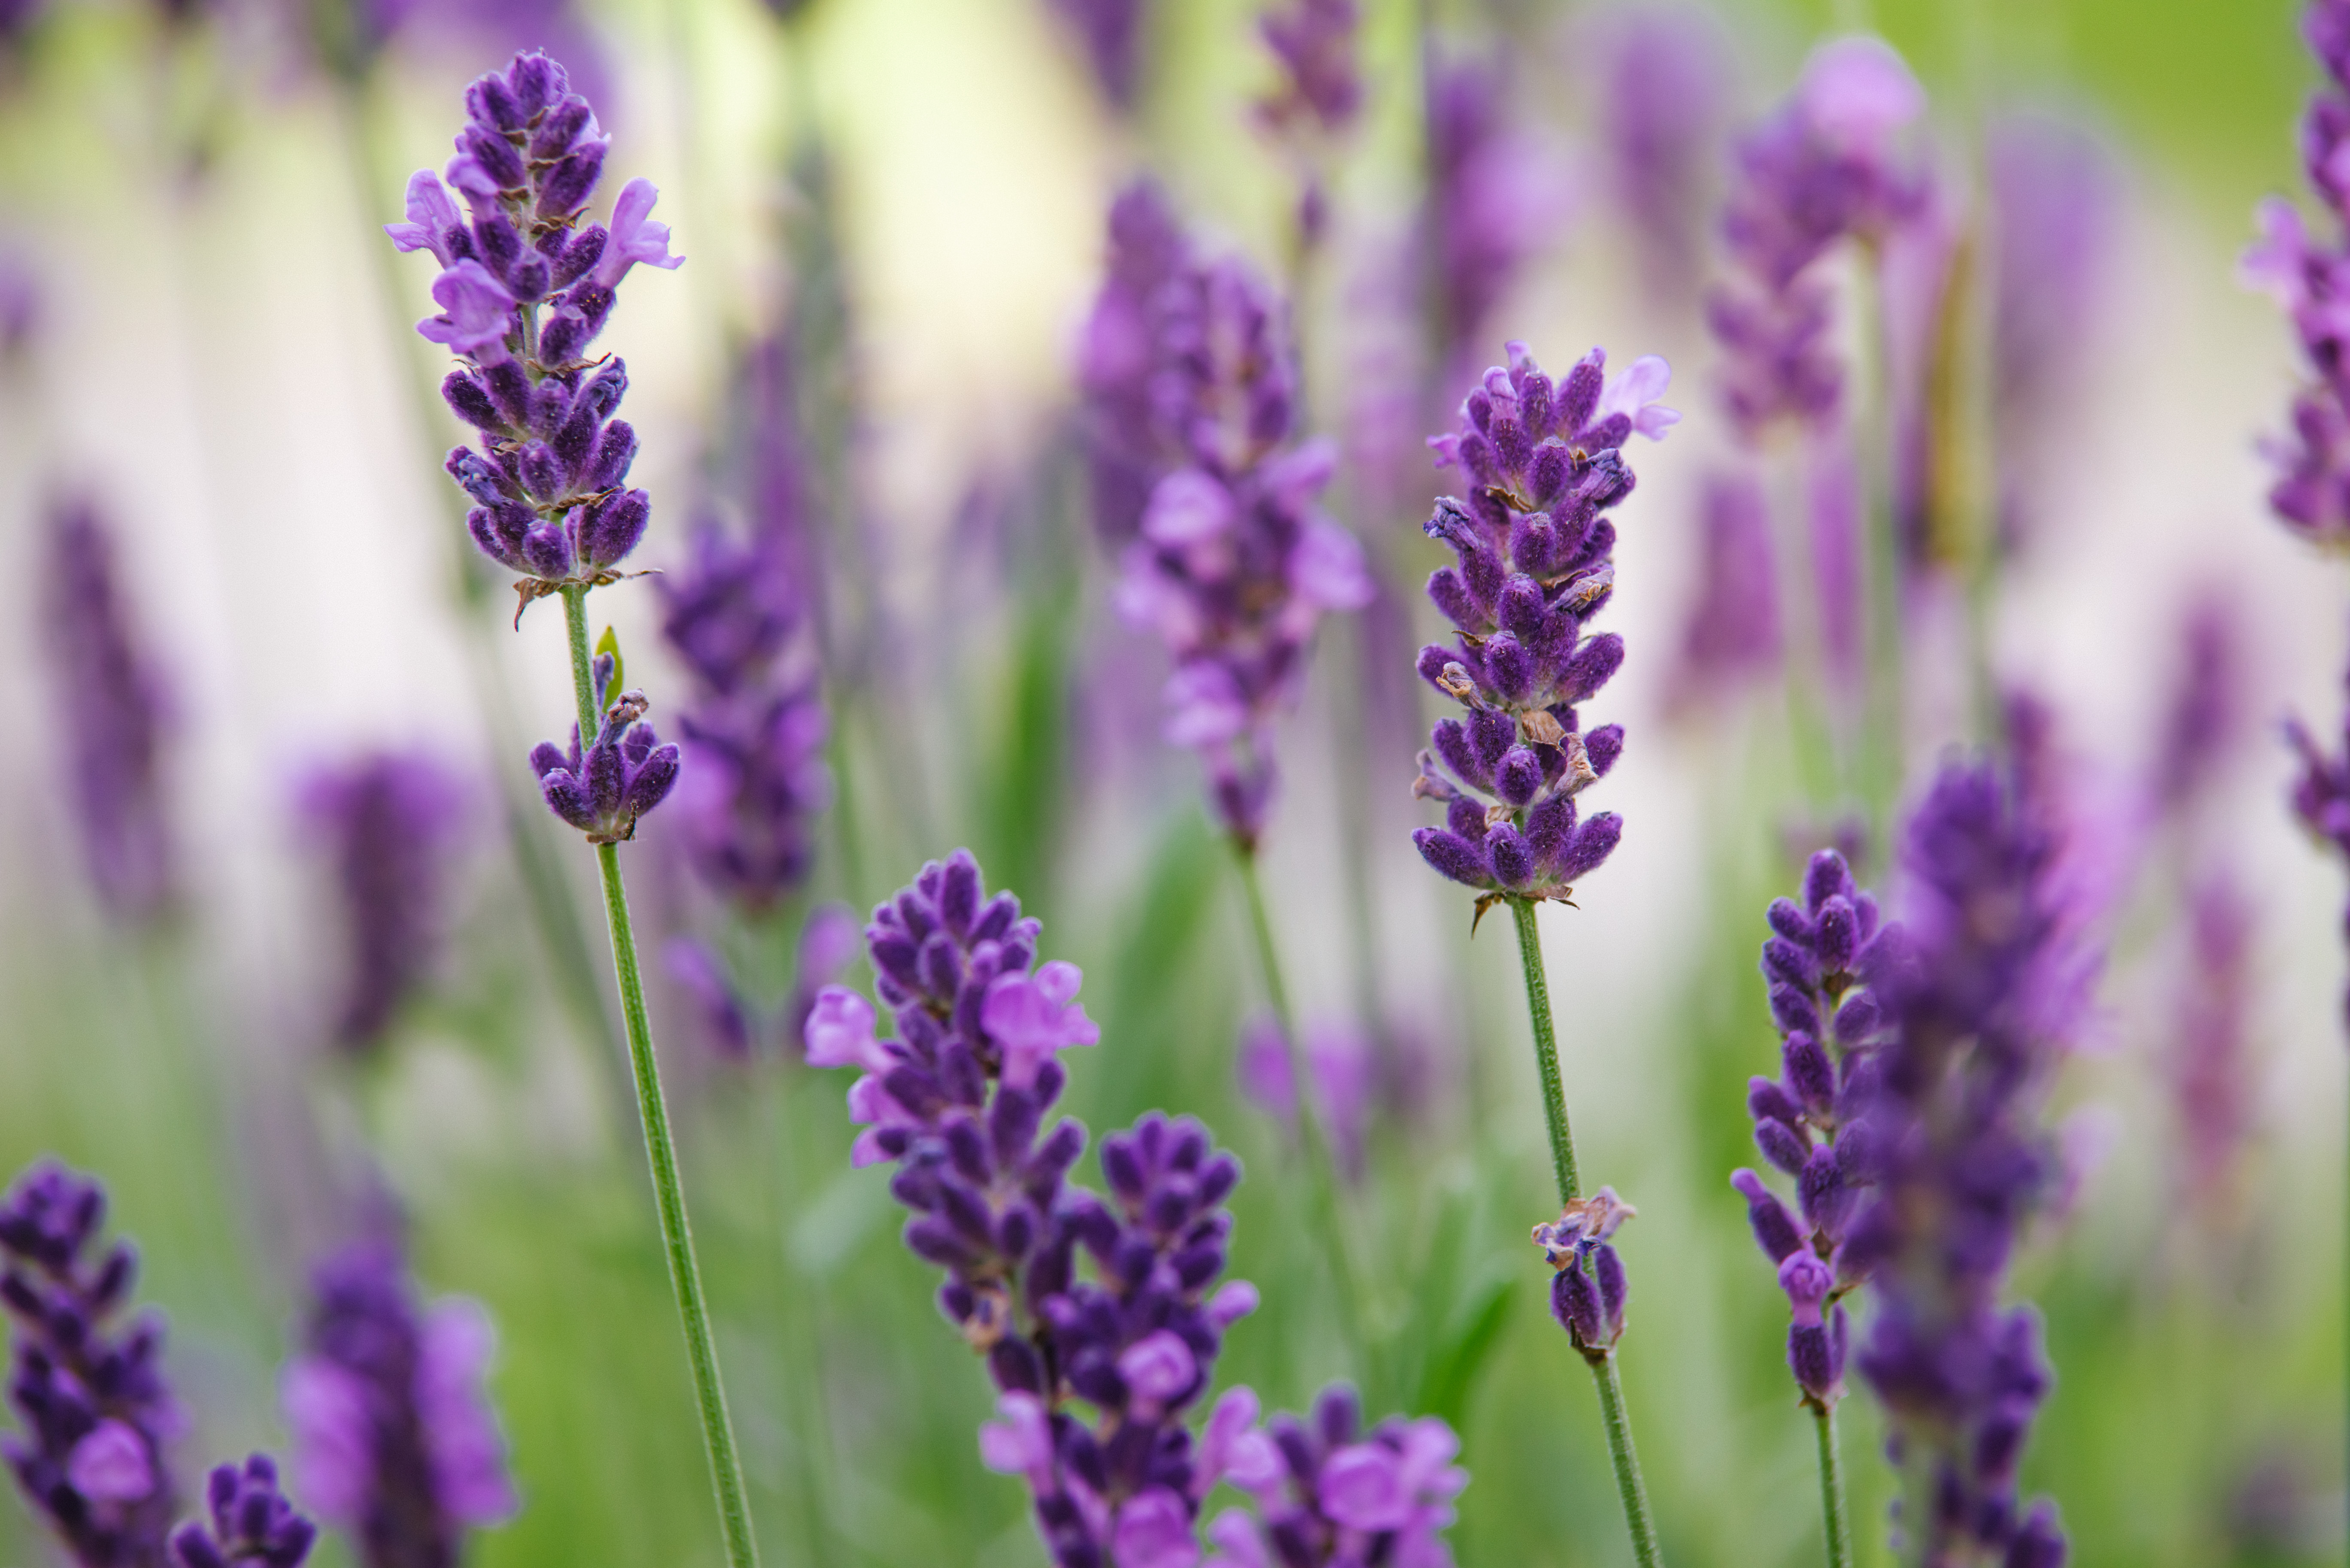 How To Care For Lavender Plants In The Winter